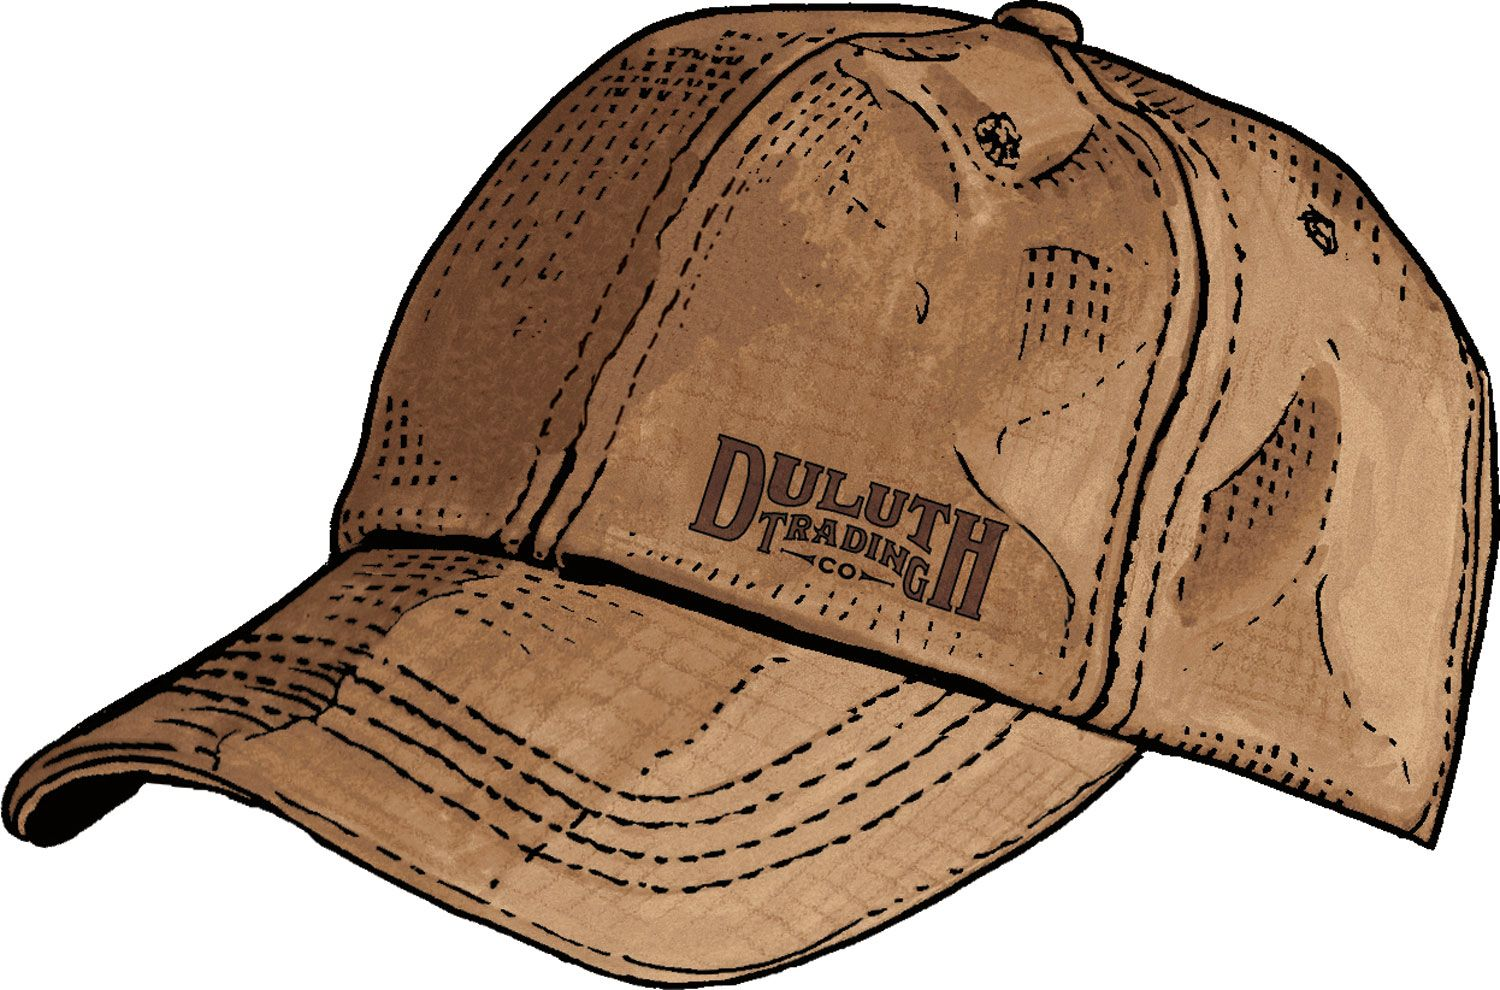 ce9c11b6c Cotton baseball cap made of rugged yet broken-in Fire Hose canvas - only  from Duluth Trading Company. Same rugged yet flexible heroic canvas that  once ...